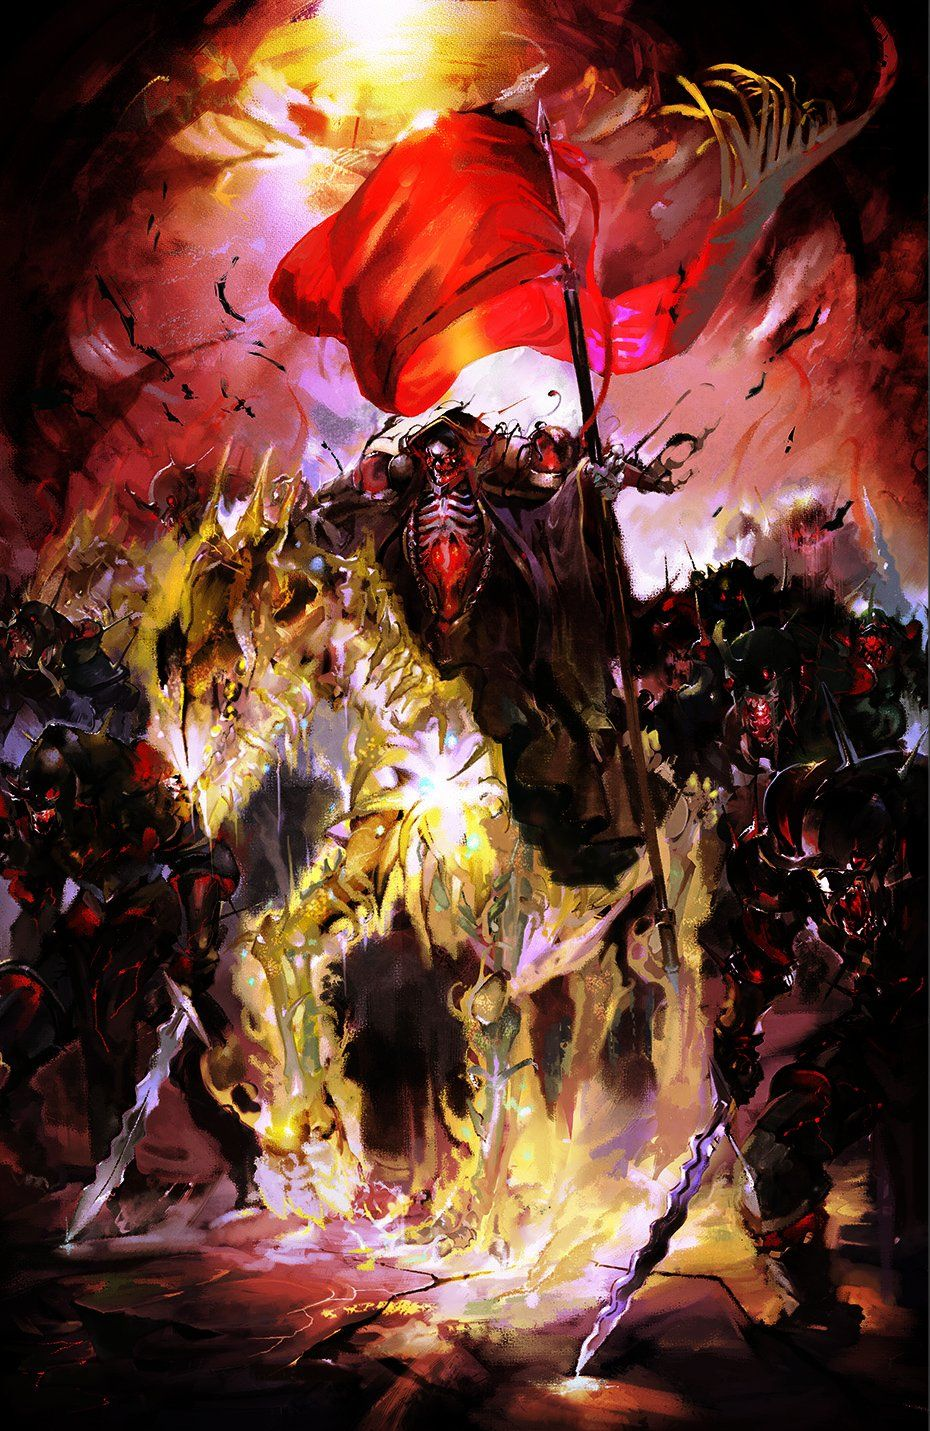 Overlord Art Cover Otaku Anime Animes Wallpapers Desenho De Anime